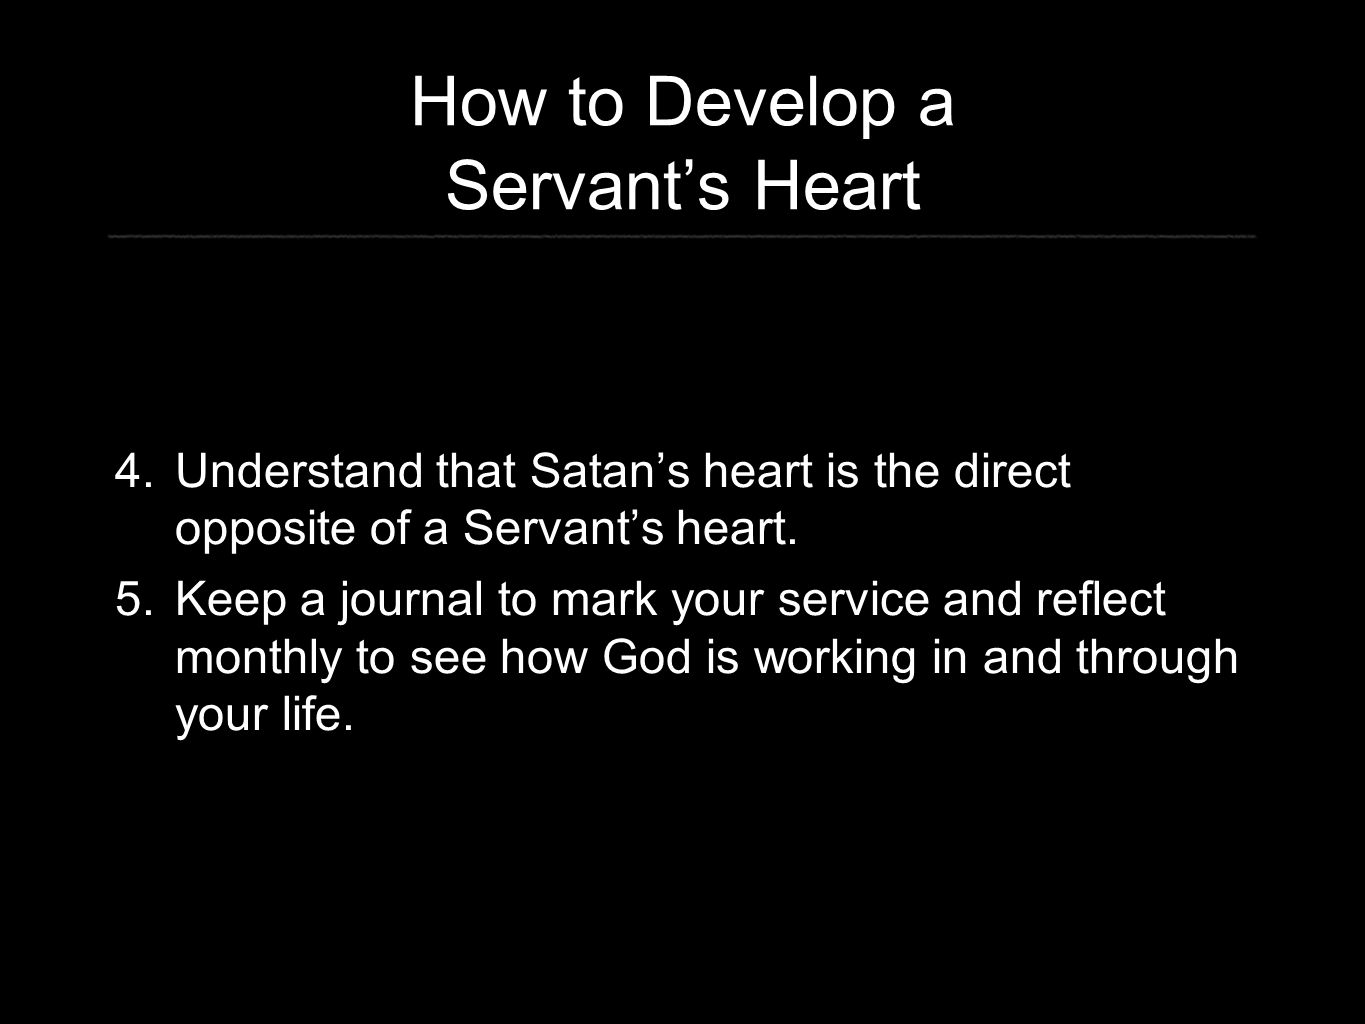 How to Develop a Servant's Heart 4. Understand that Satan's heart is the direct opposite of a Servant's heart. 5. Keep a journal to mark your service